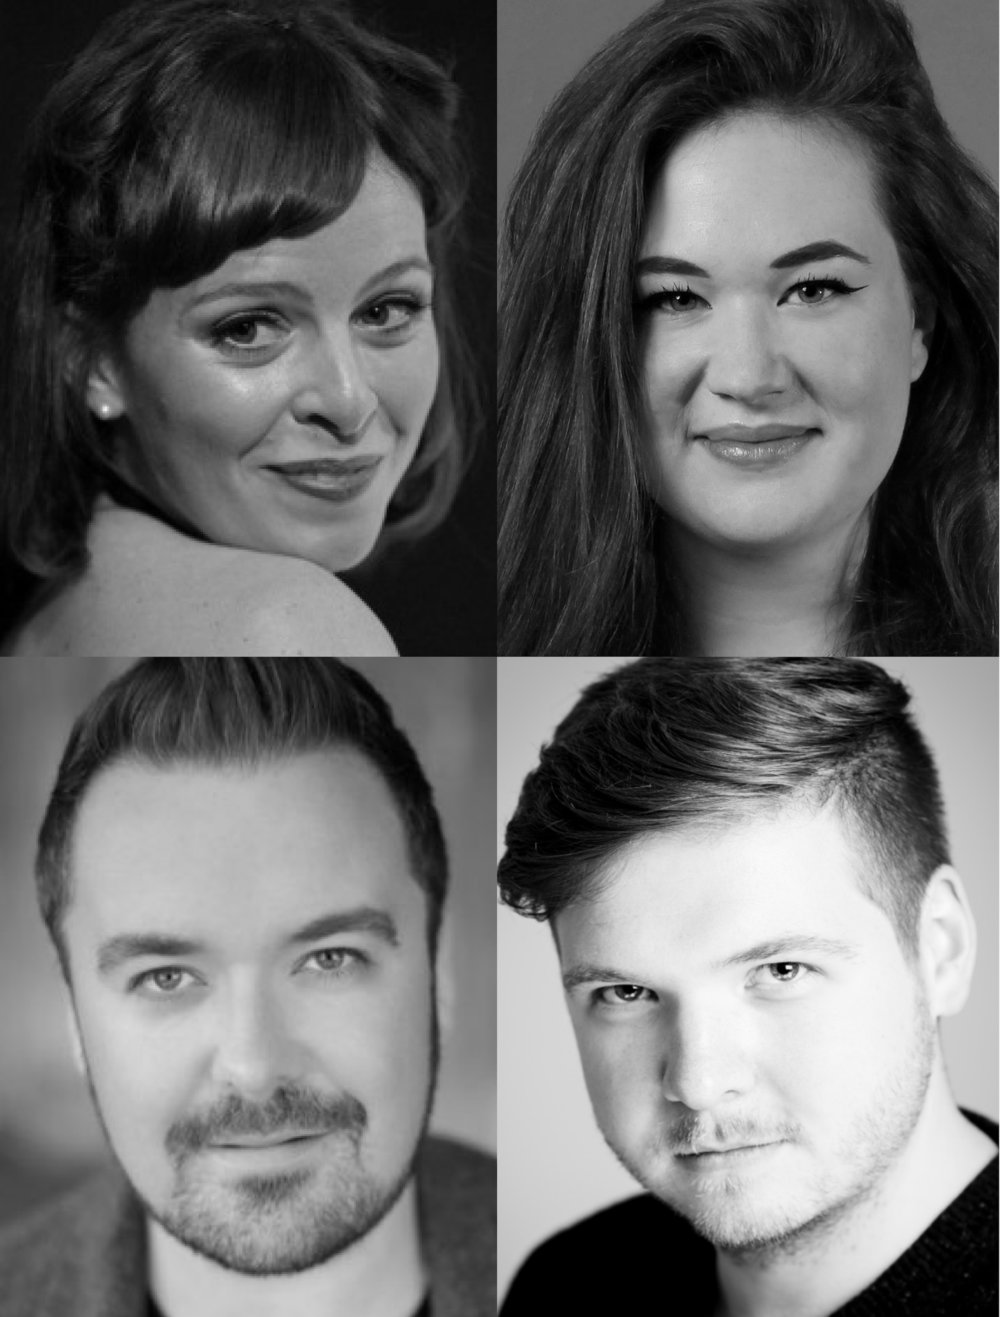 vocal quartet 21.06.18 - BALC bw copy.jpg